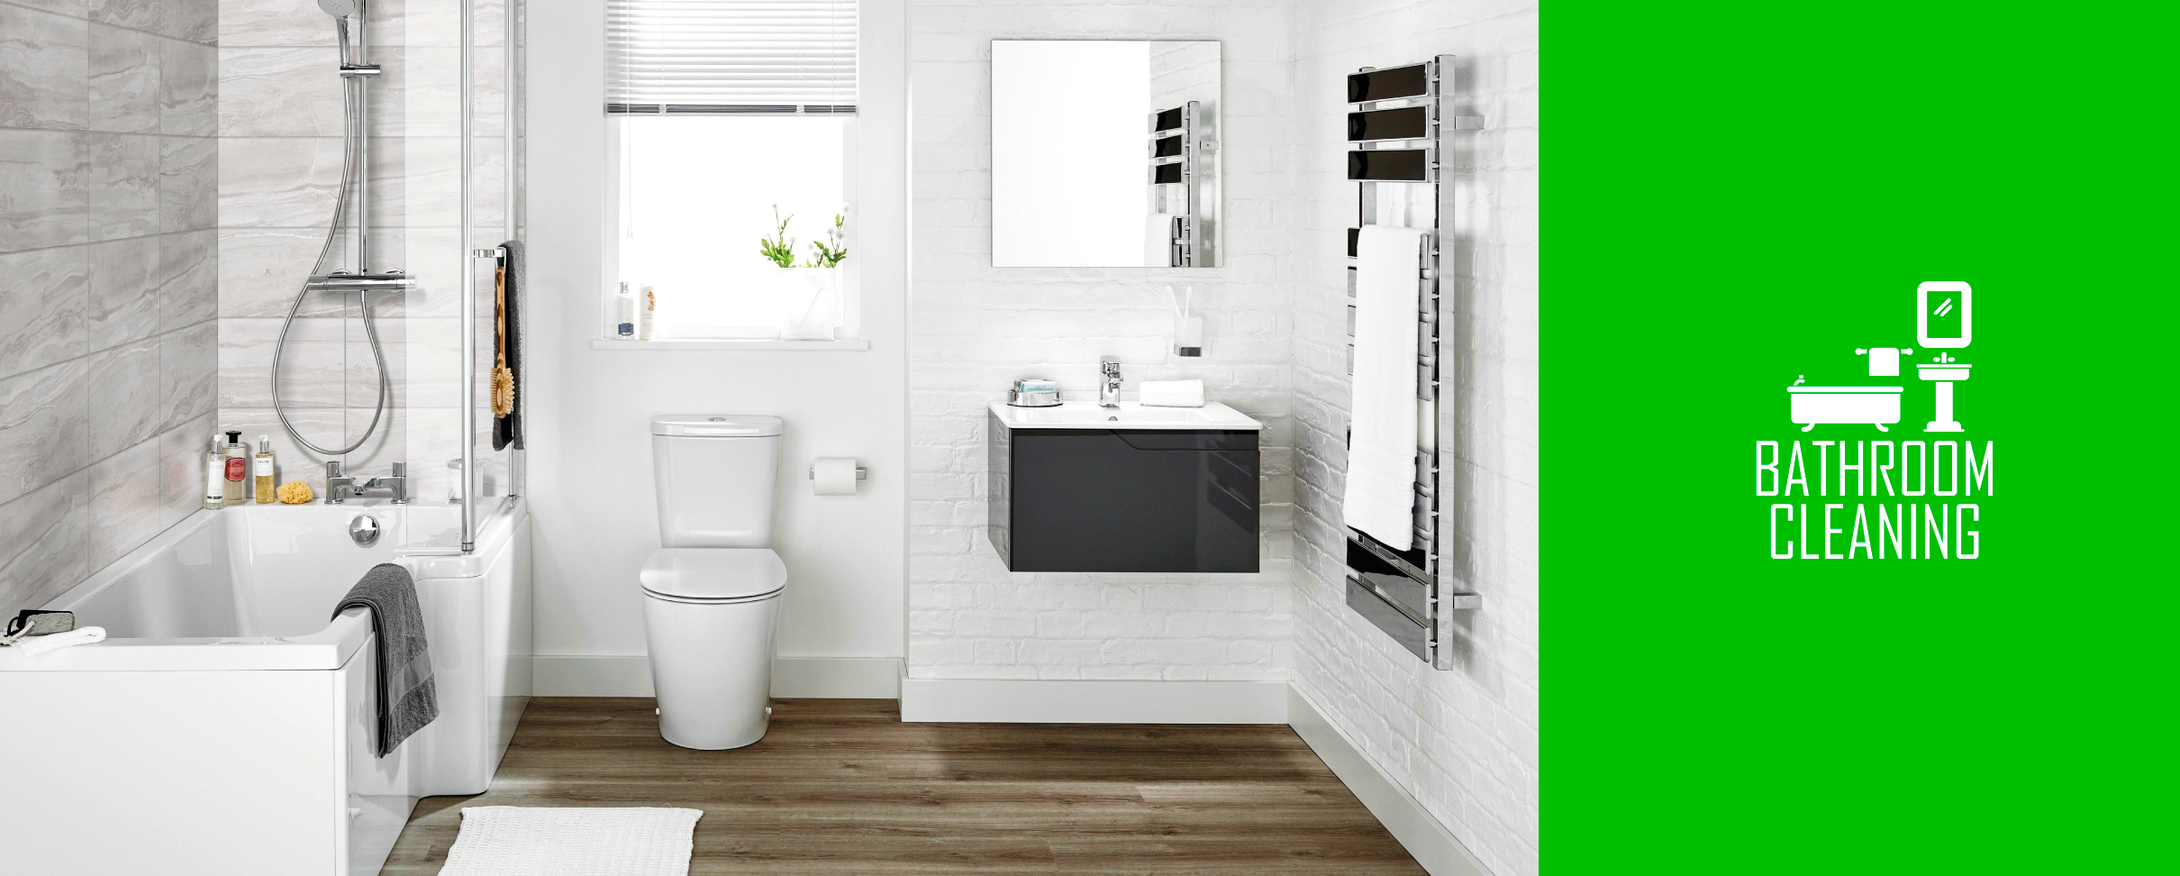 In The Bathroom: ✔ Scrub & sanitize toilet, sink and shower/bathtub  ✔ Clean accessible surfaces  ✔ Clean mirrors and glass  ✔ Hang or fold towels neatly  ✔ Wipe exterior shelving, cabinets, drawers